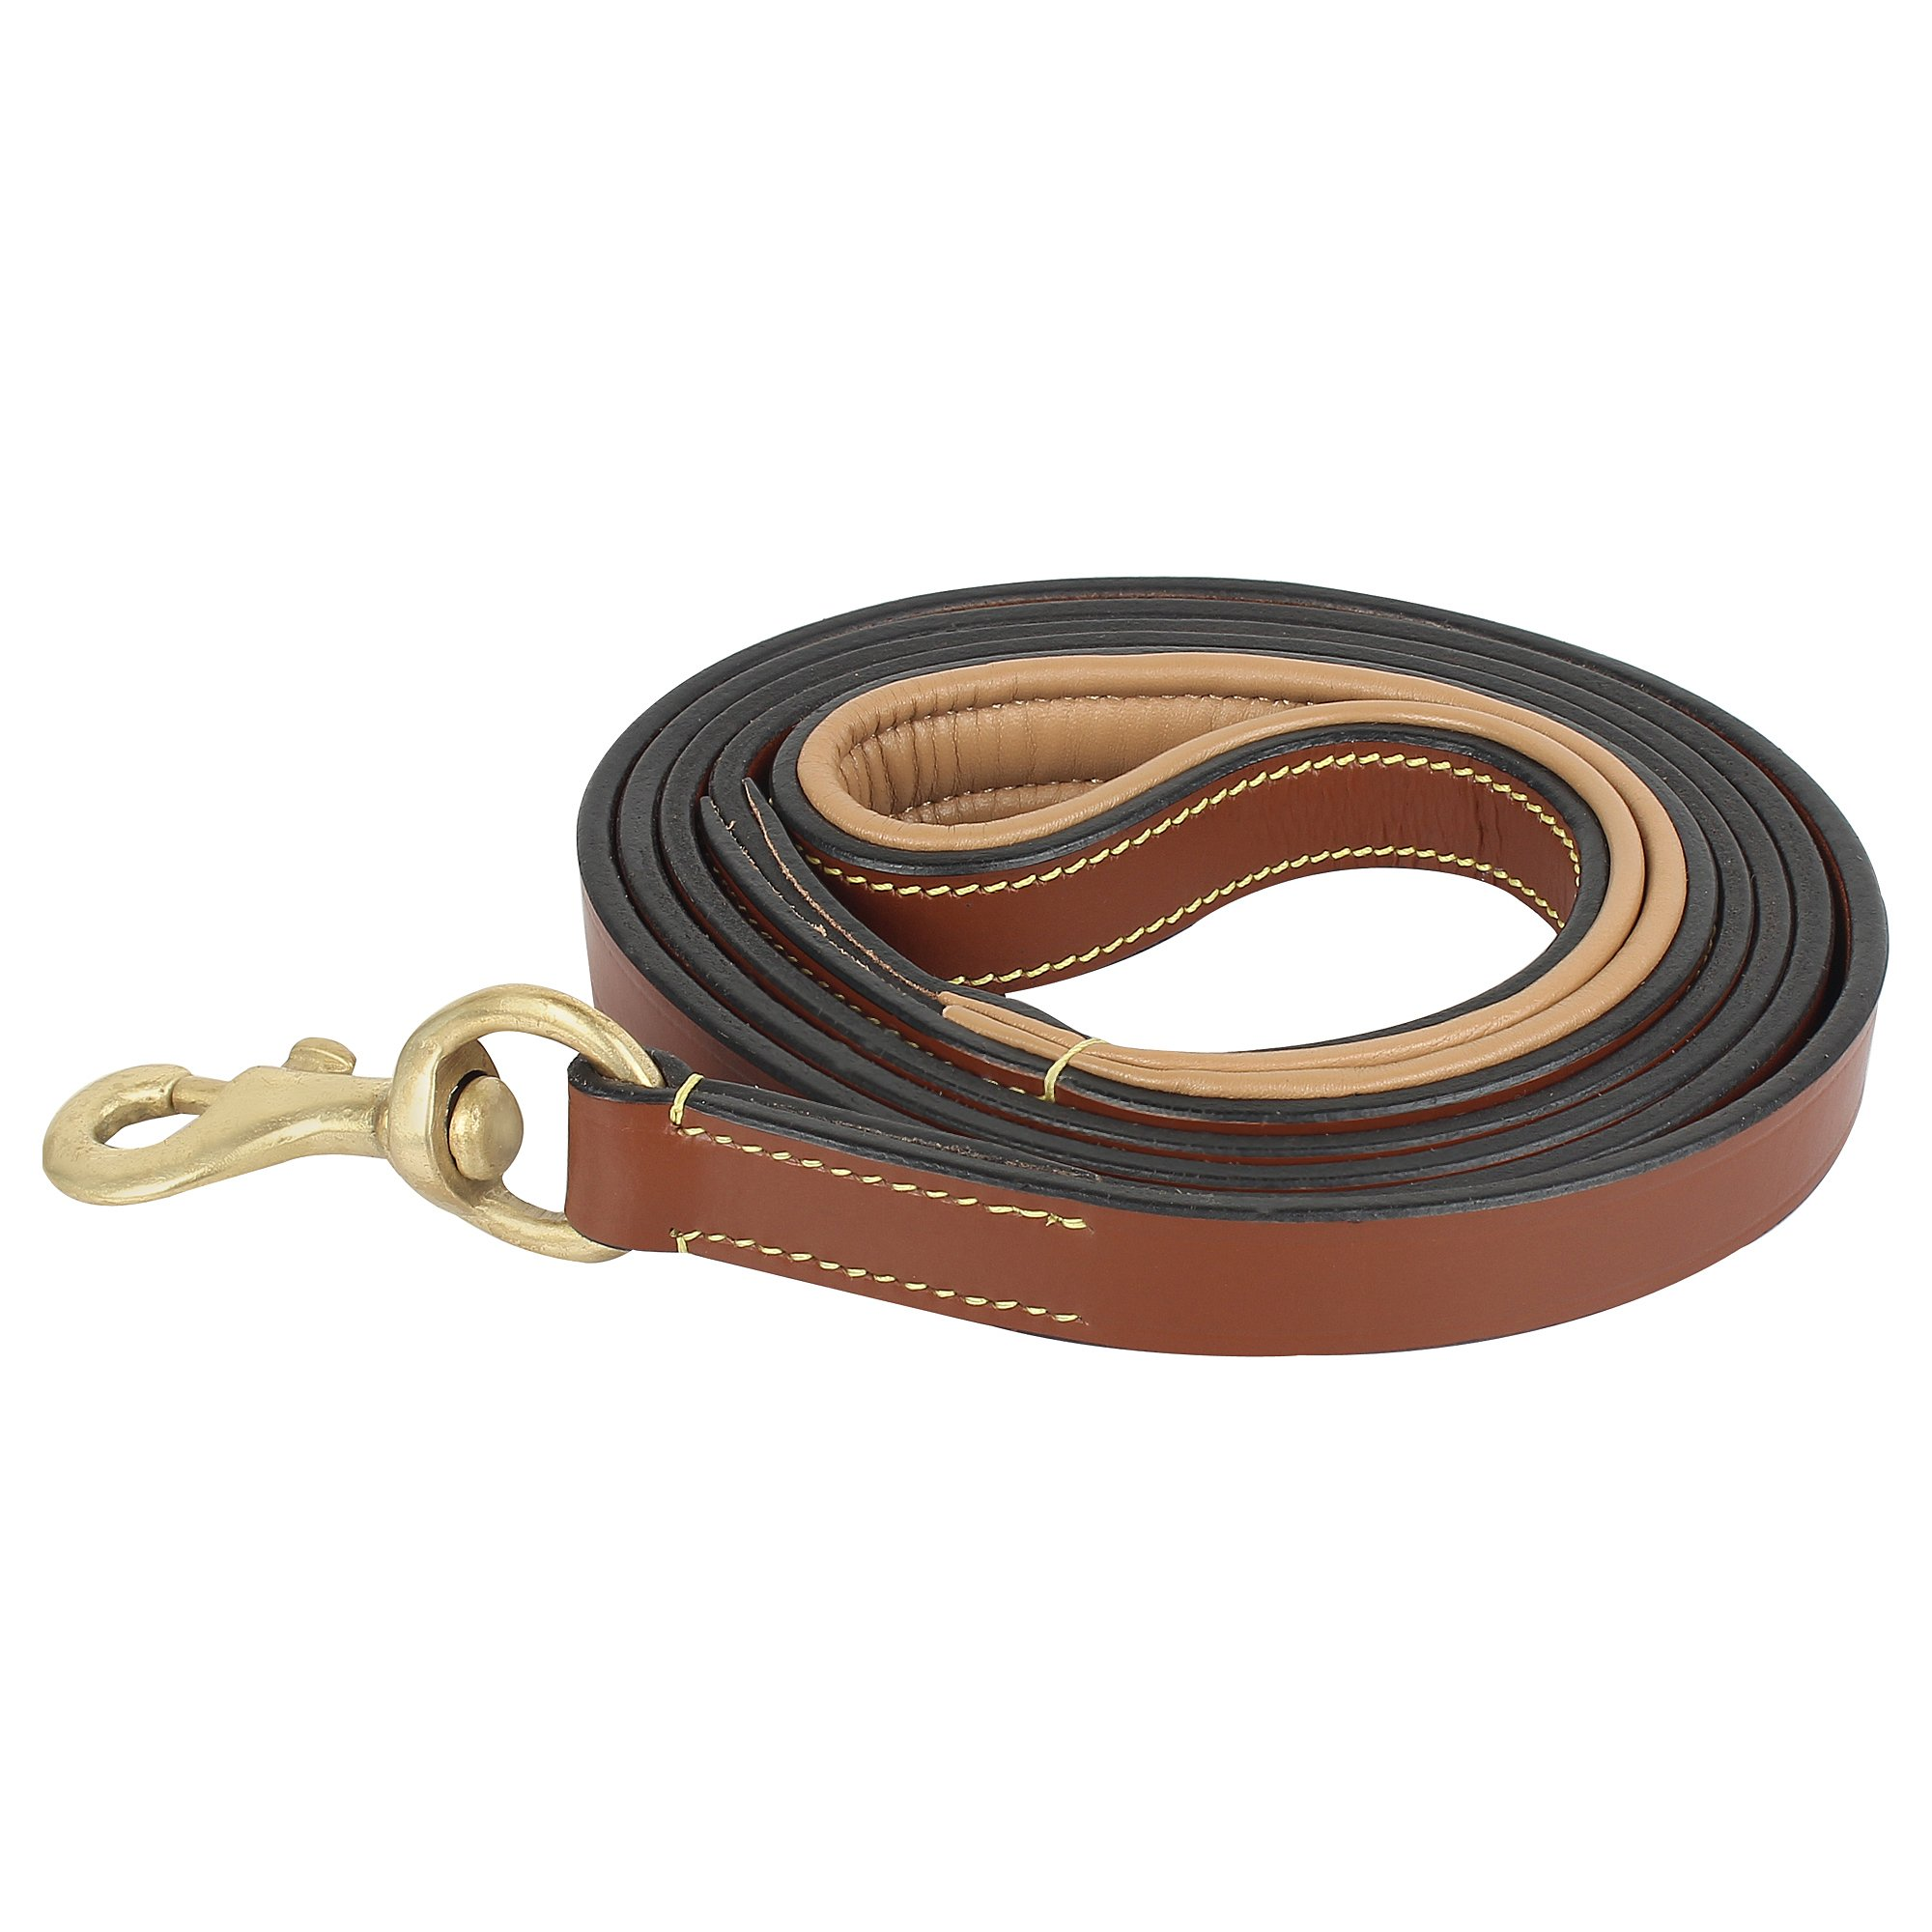 Rustic Town Leather Dog Leash 6 ft - Gentle Leader Leash for Small, Medium & Large Dogs - Miltary Grade Lead for Training & Walking by Rustic Town (Image #2)